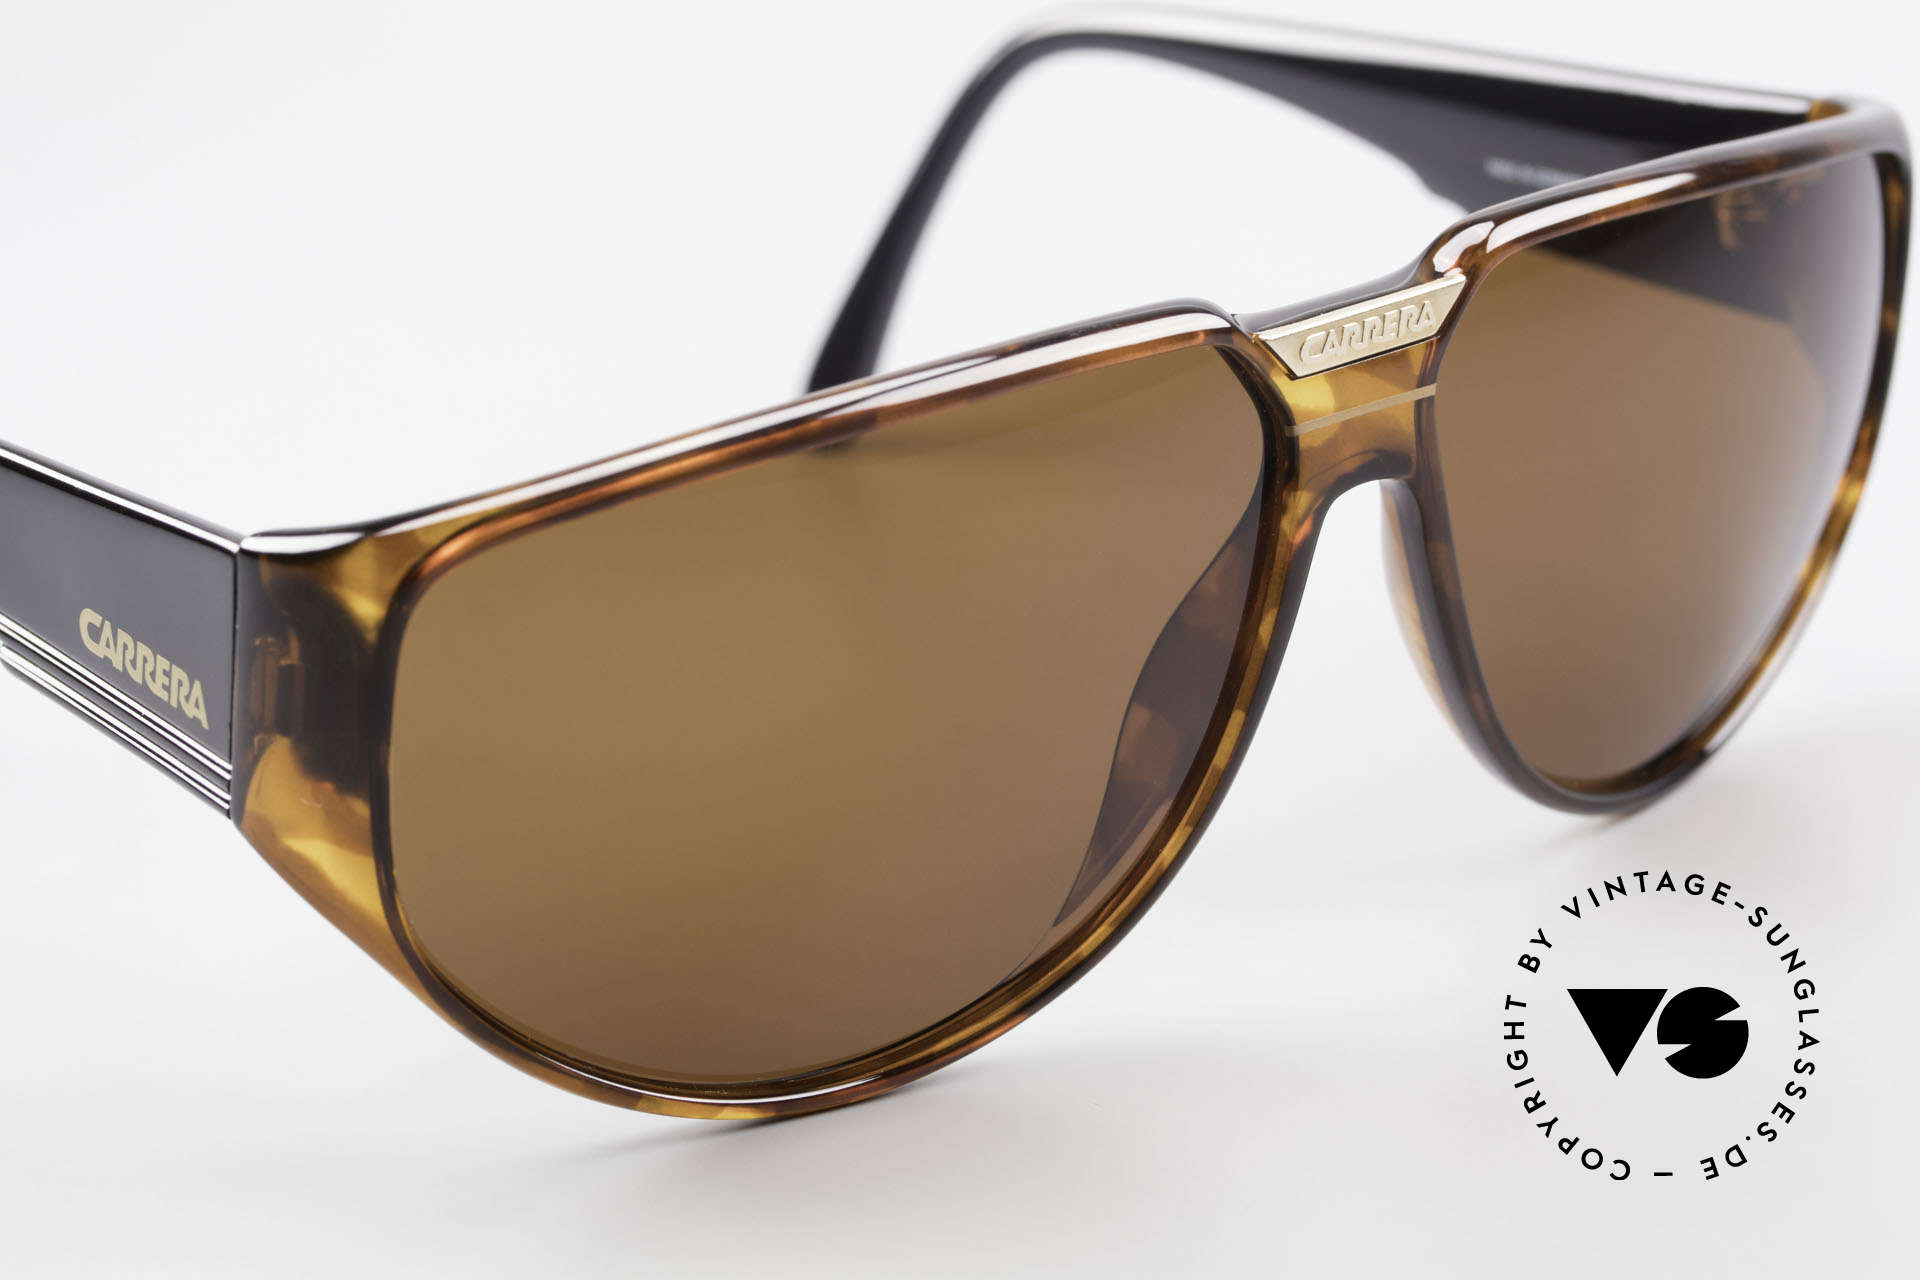 Carrera 5417 Rare 80's Sportsglasses Optyl, 30 years old unicum still shines like just produced, Made for Men